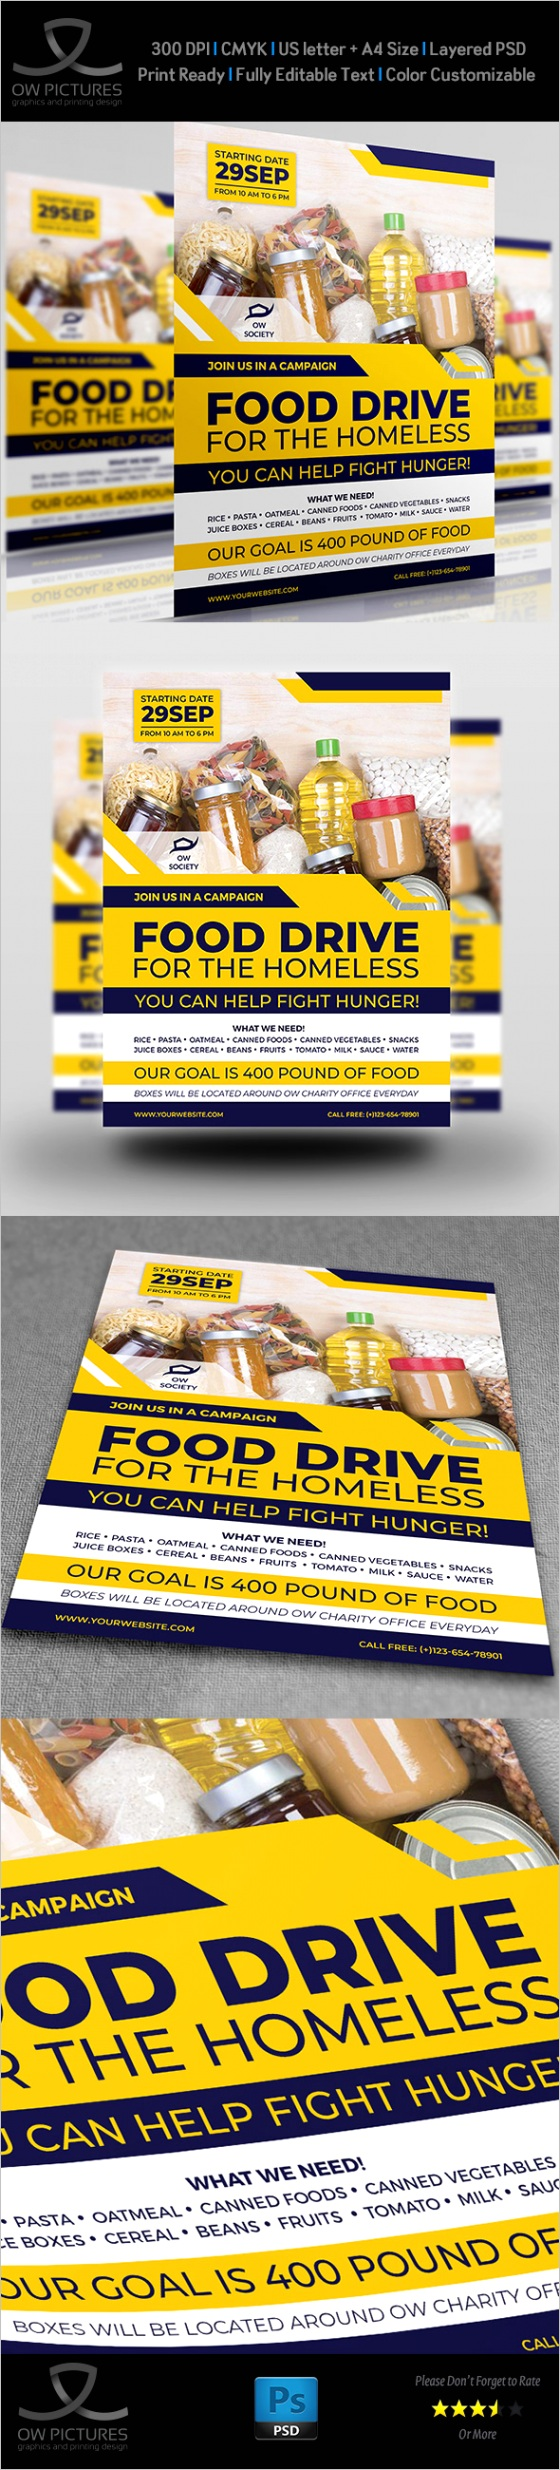 Homeless Food Drive Flyer Template